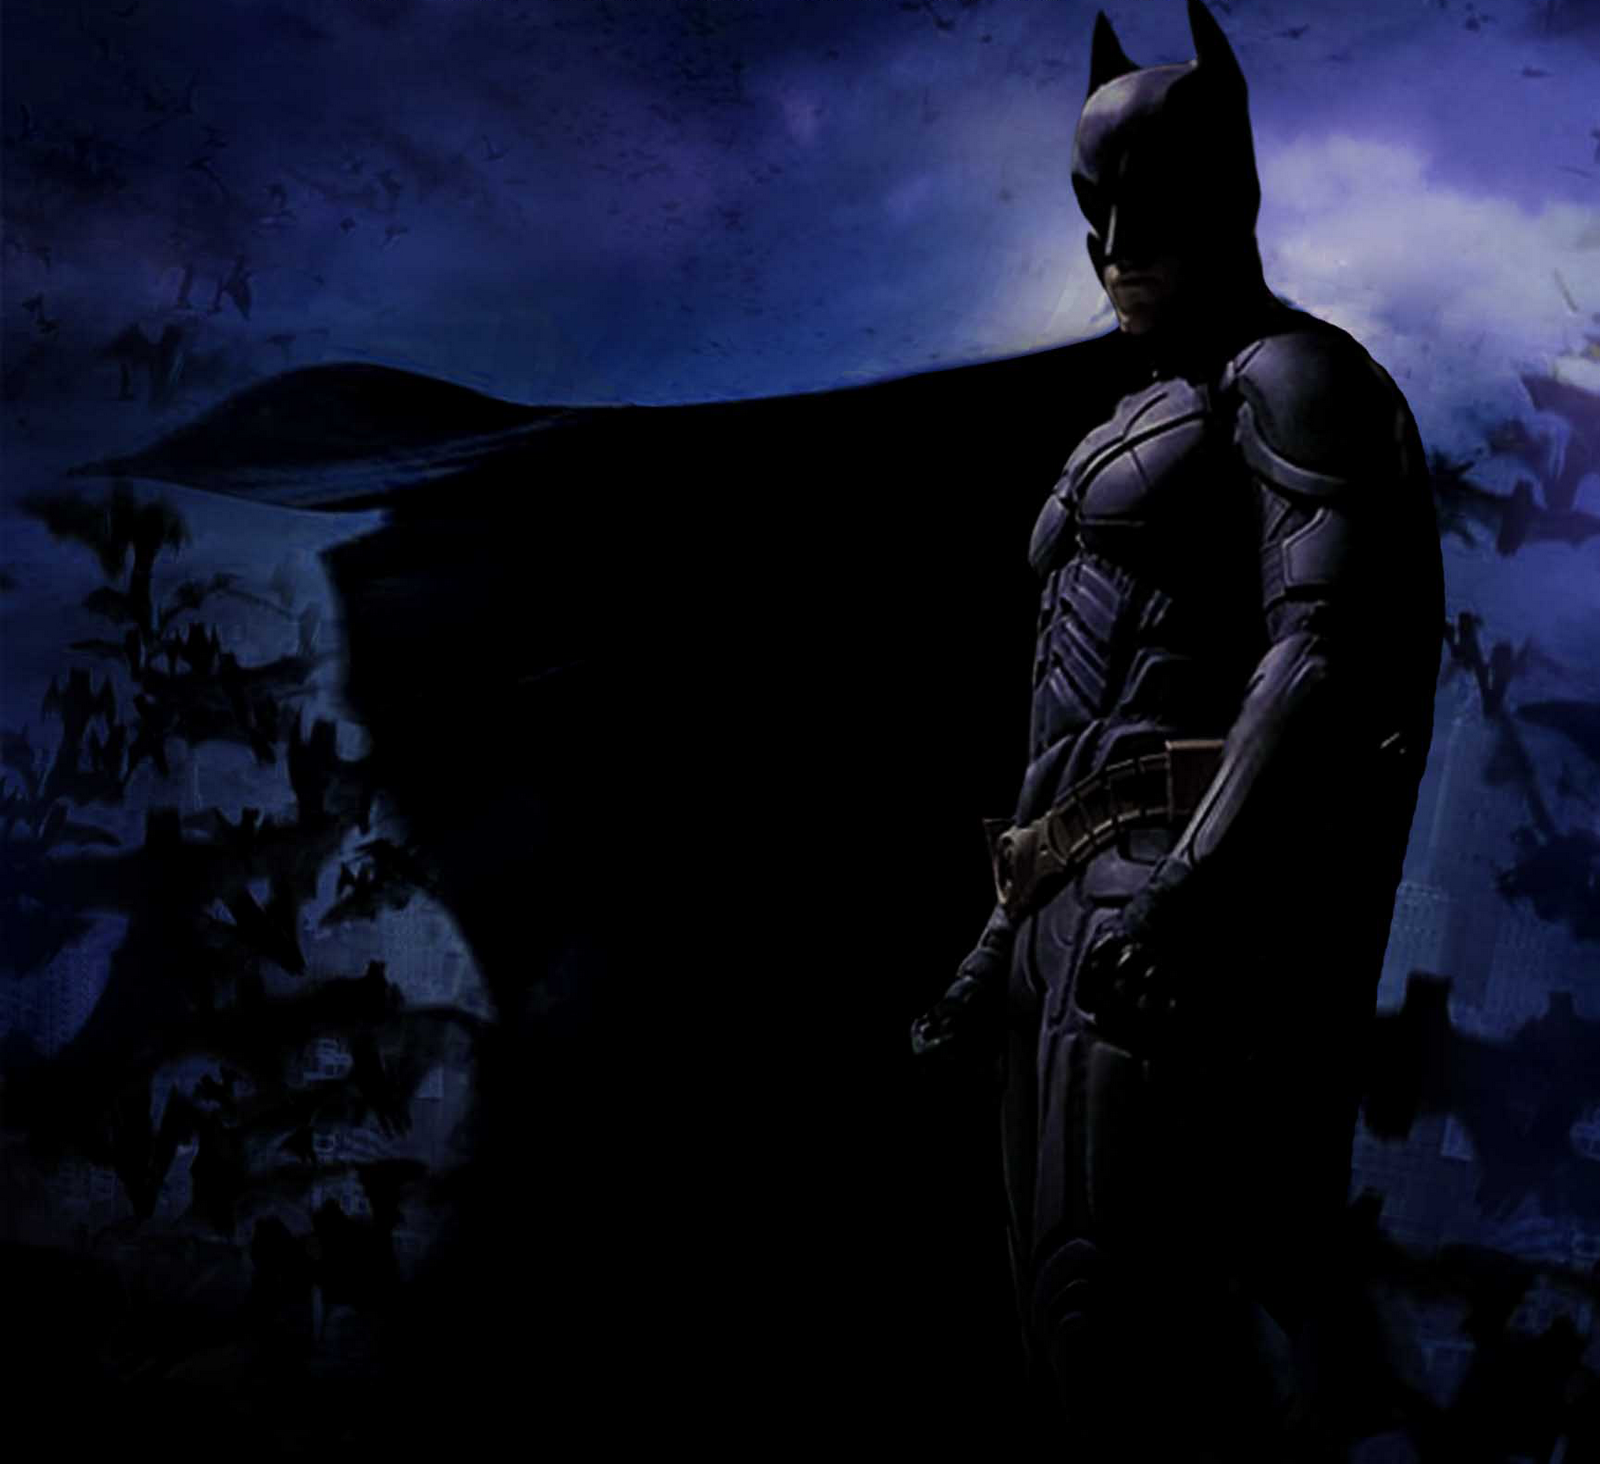 Batstravaganza! – What does it mean to be the Dark Knight?